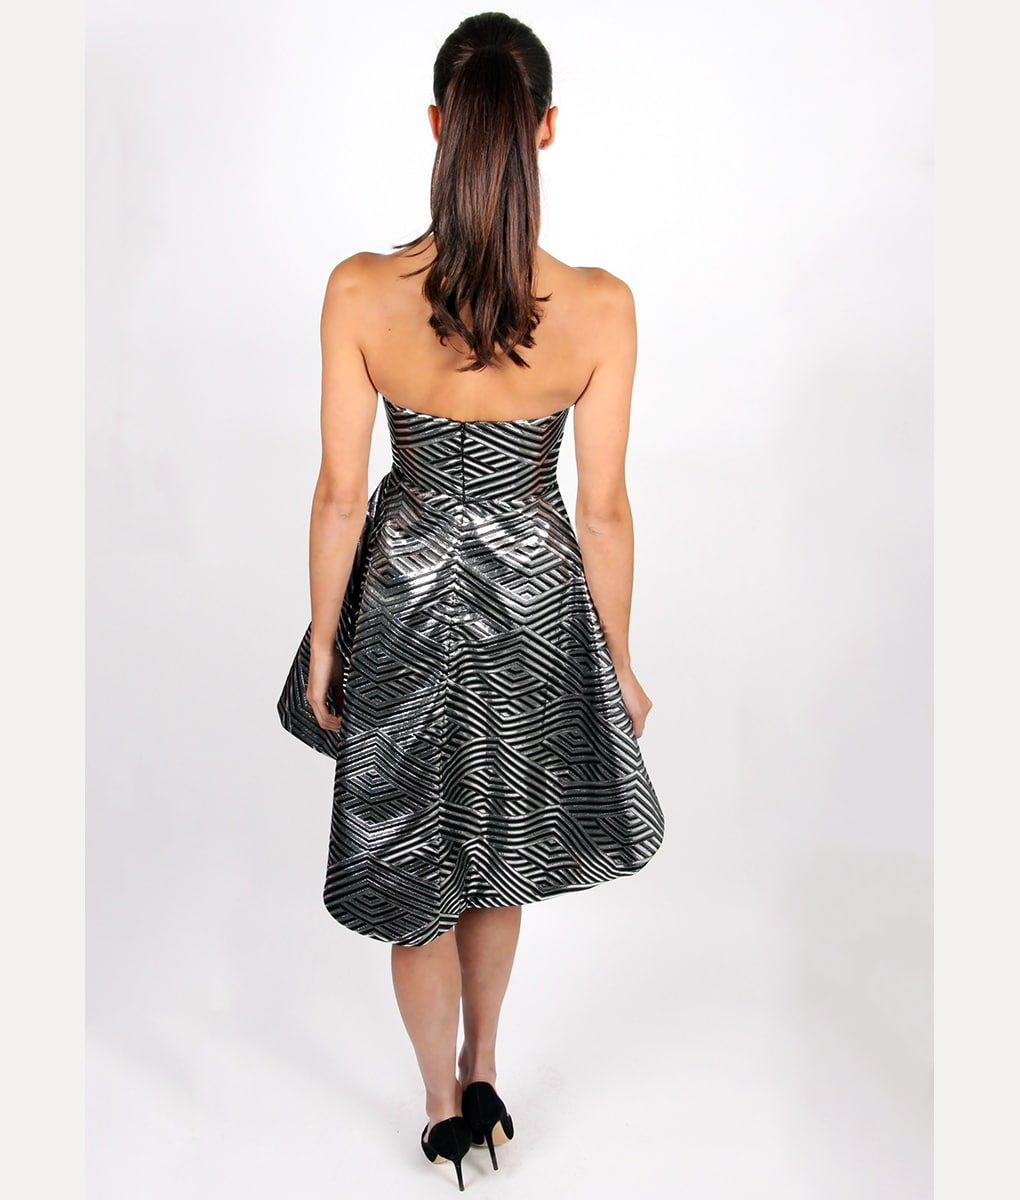 Alila Black & Silver Strapless Dress by Lumier by Bariano